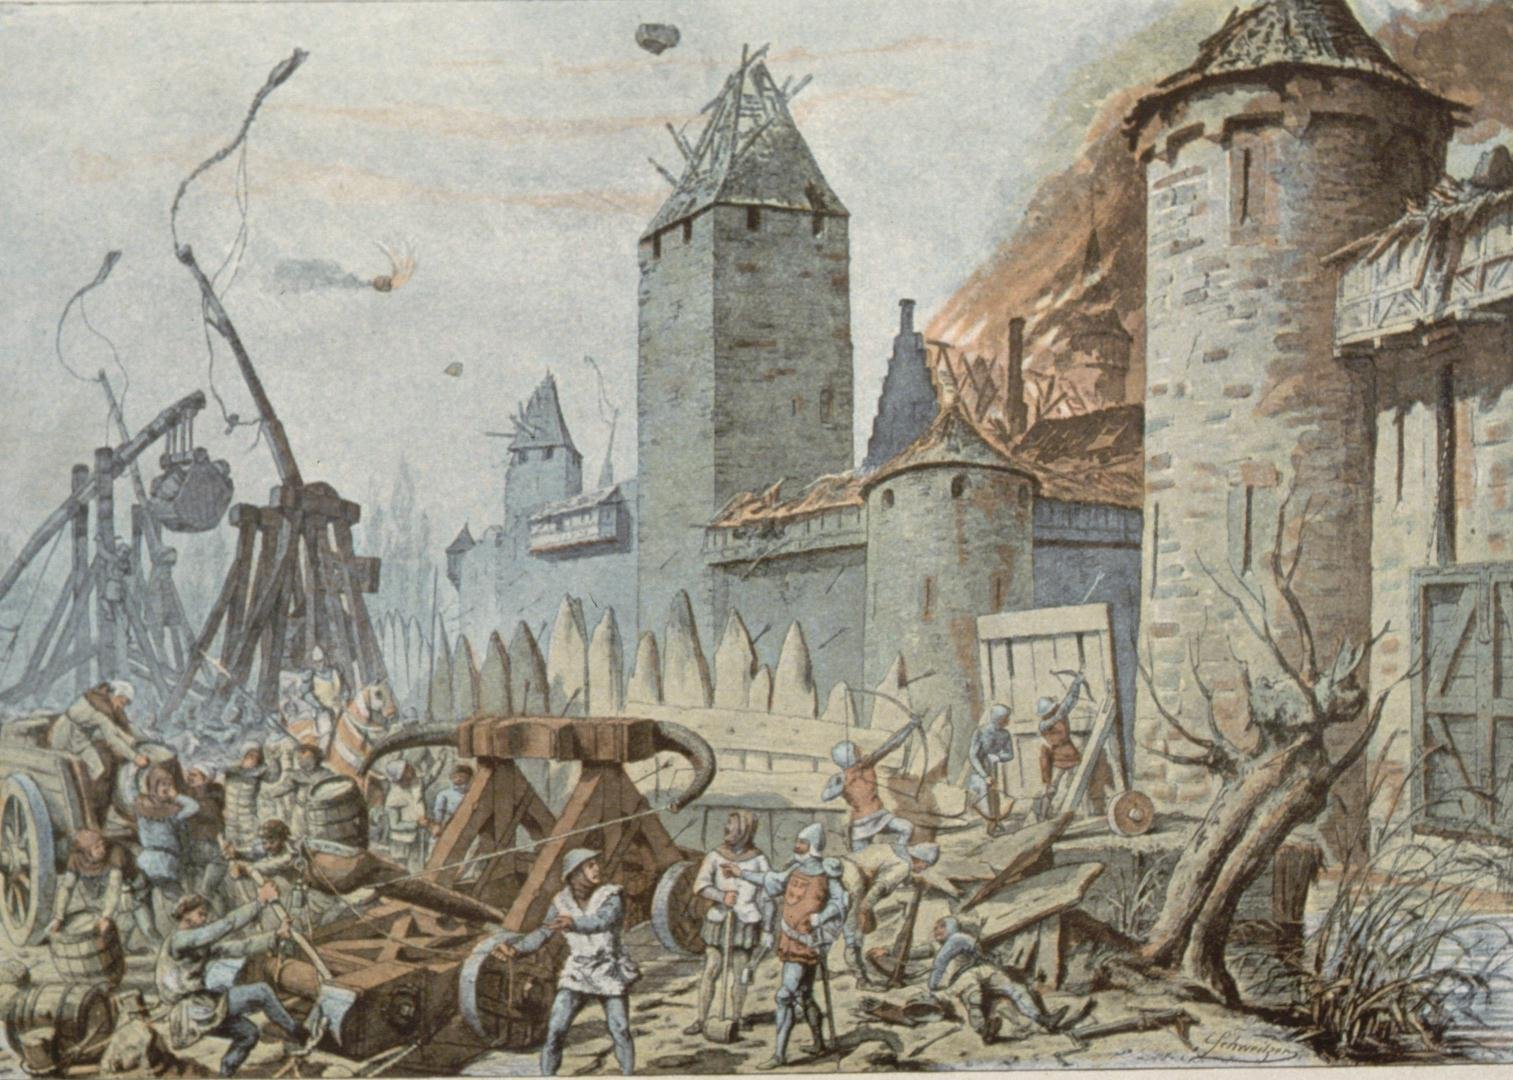 File:Destruction du château de Schwanau (1333).jpg